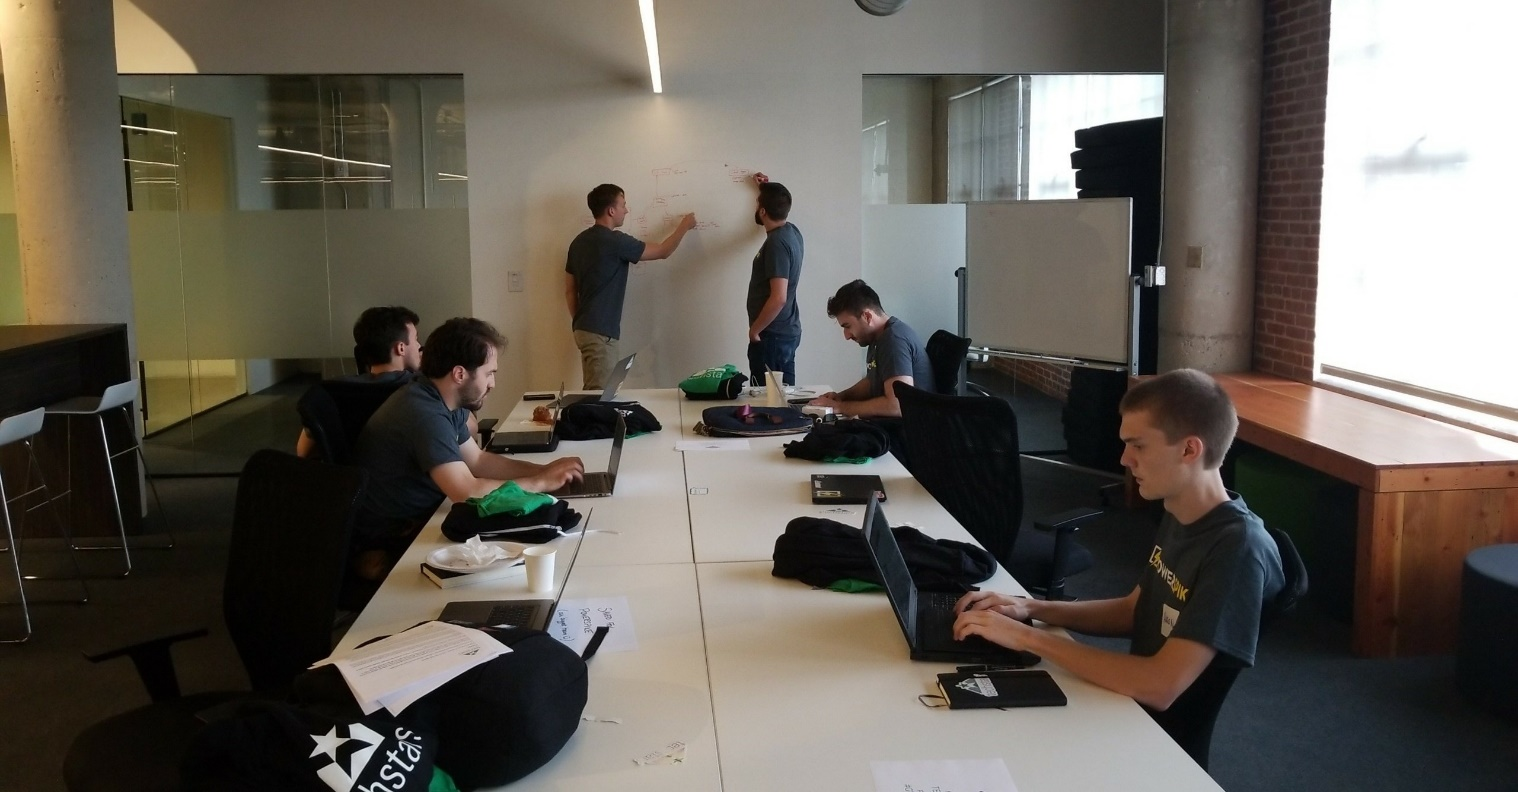 Founders collaborate on product building process